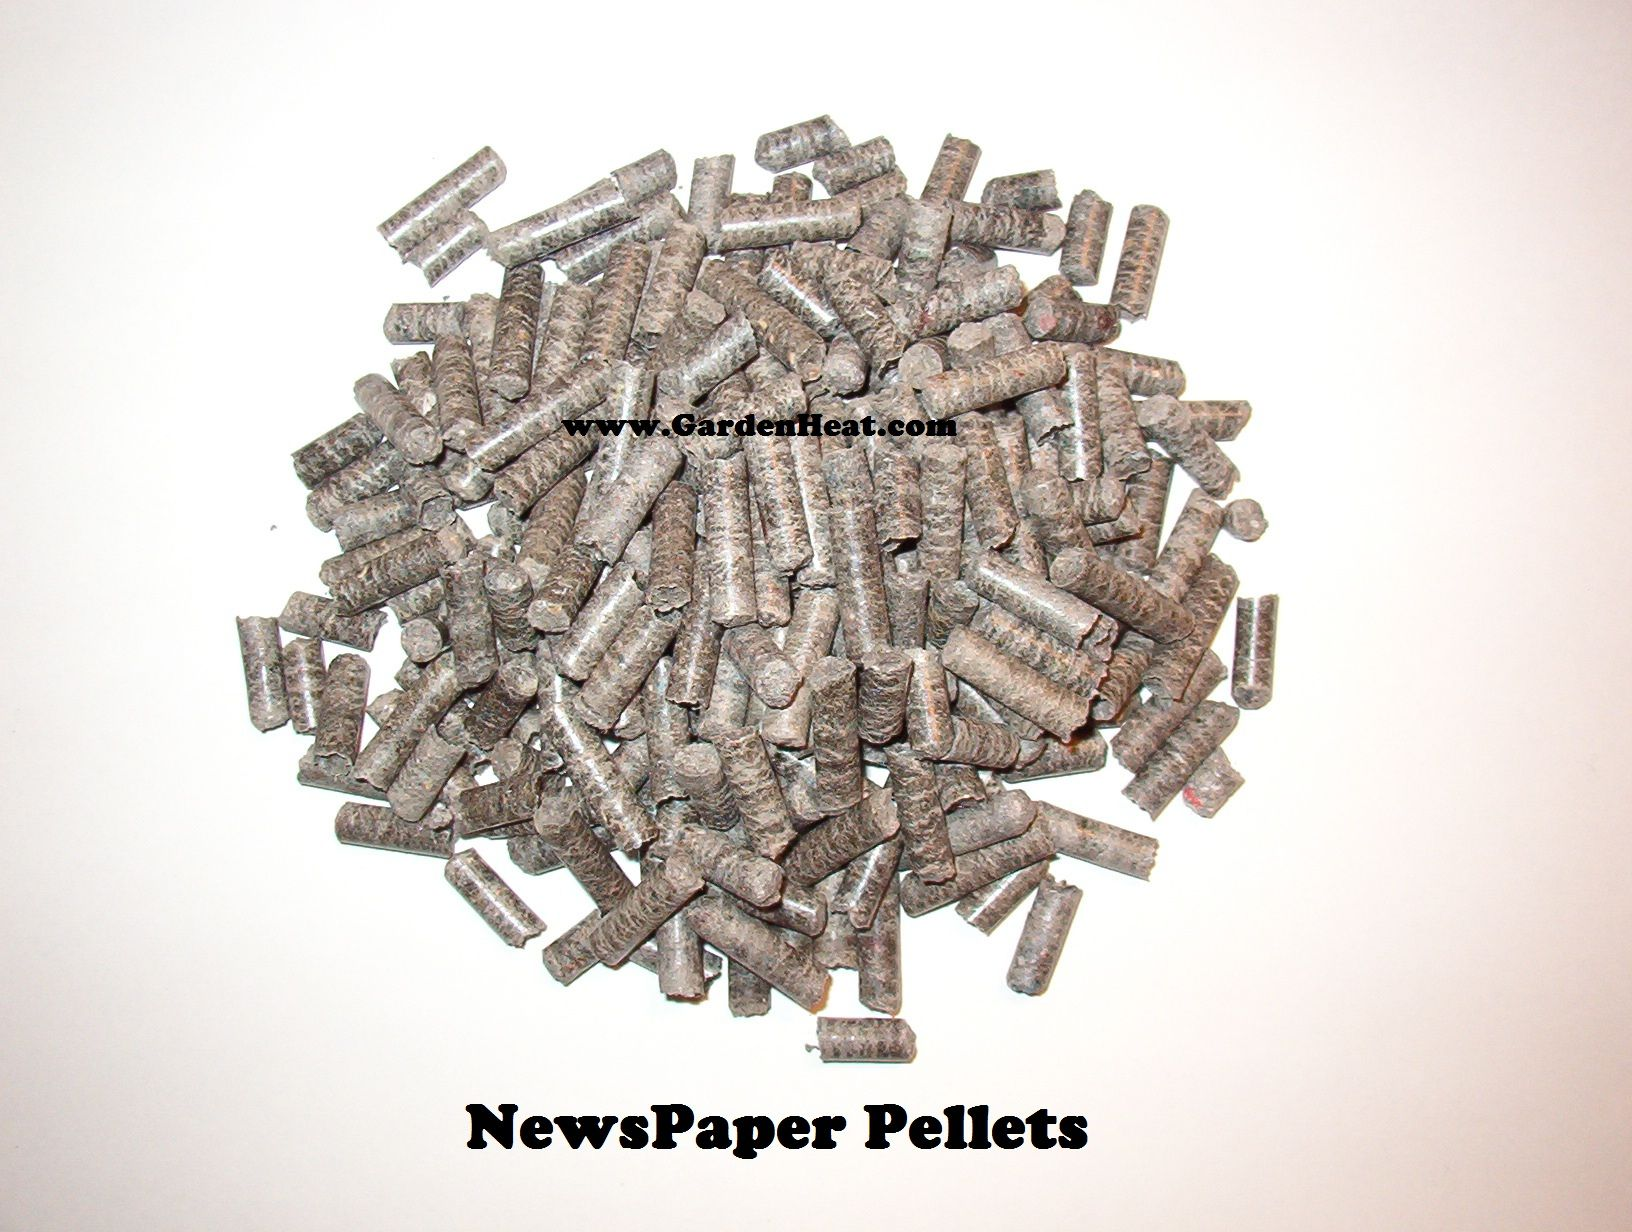 News Paper Pellets Just News Paper Made Into Pellets They Burn Great In A Multi Fuel Pellet Stove Pellet Stove Wood Pellets Pellet